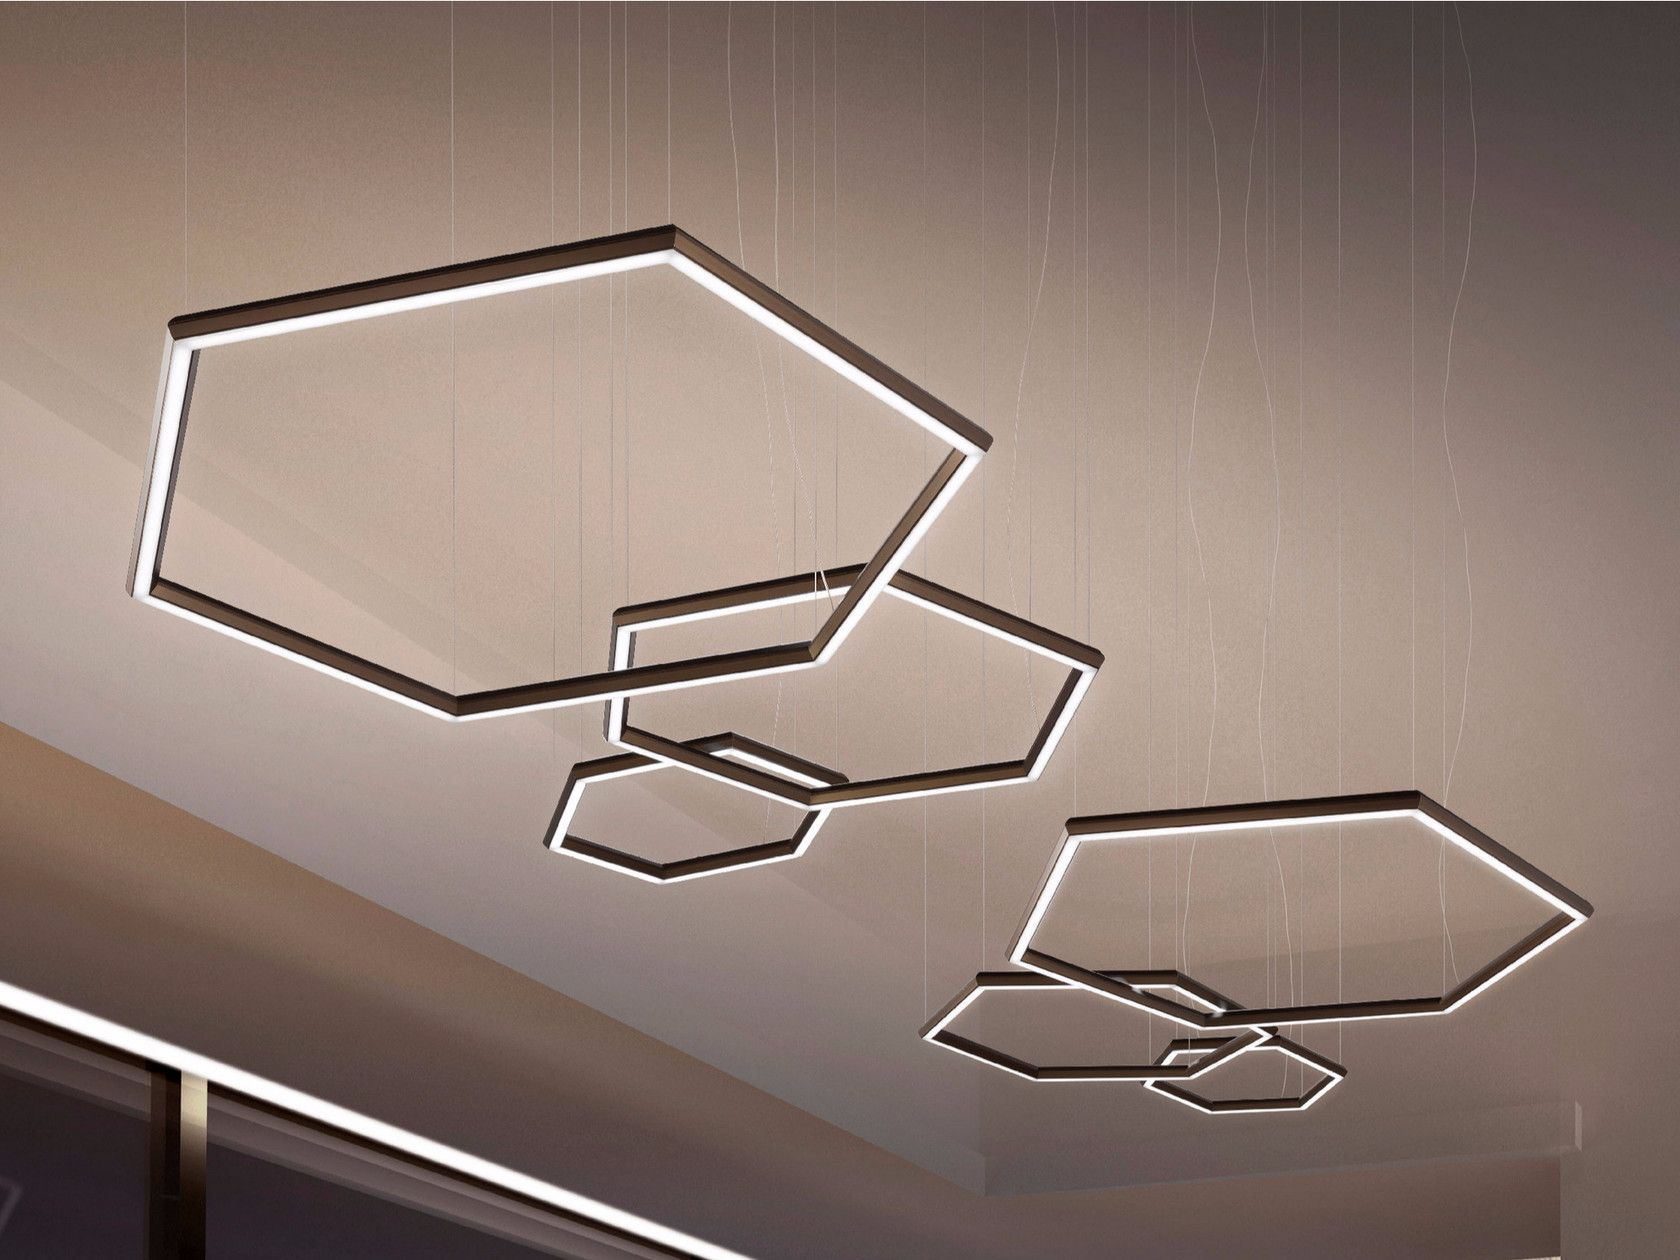 Led Pendant Lamp Poly Esagono By Olev Pendant Lamp Design Pendant Lamp Lamp Design